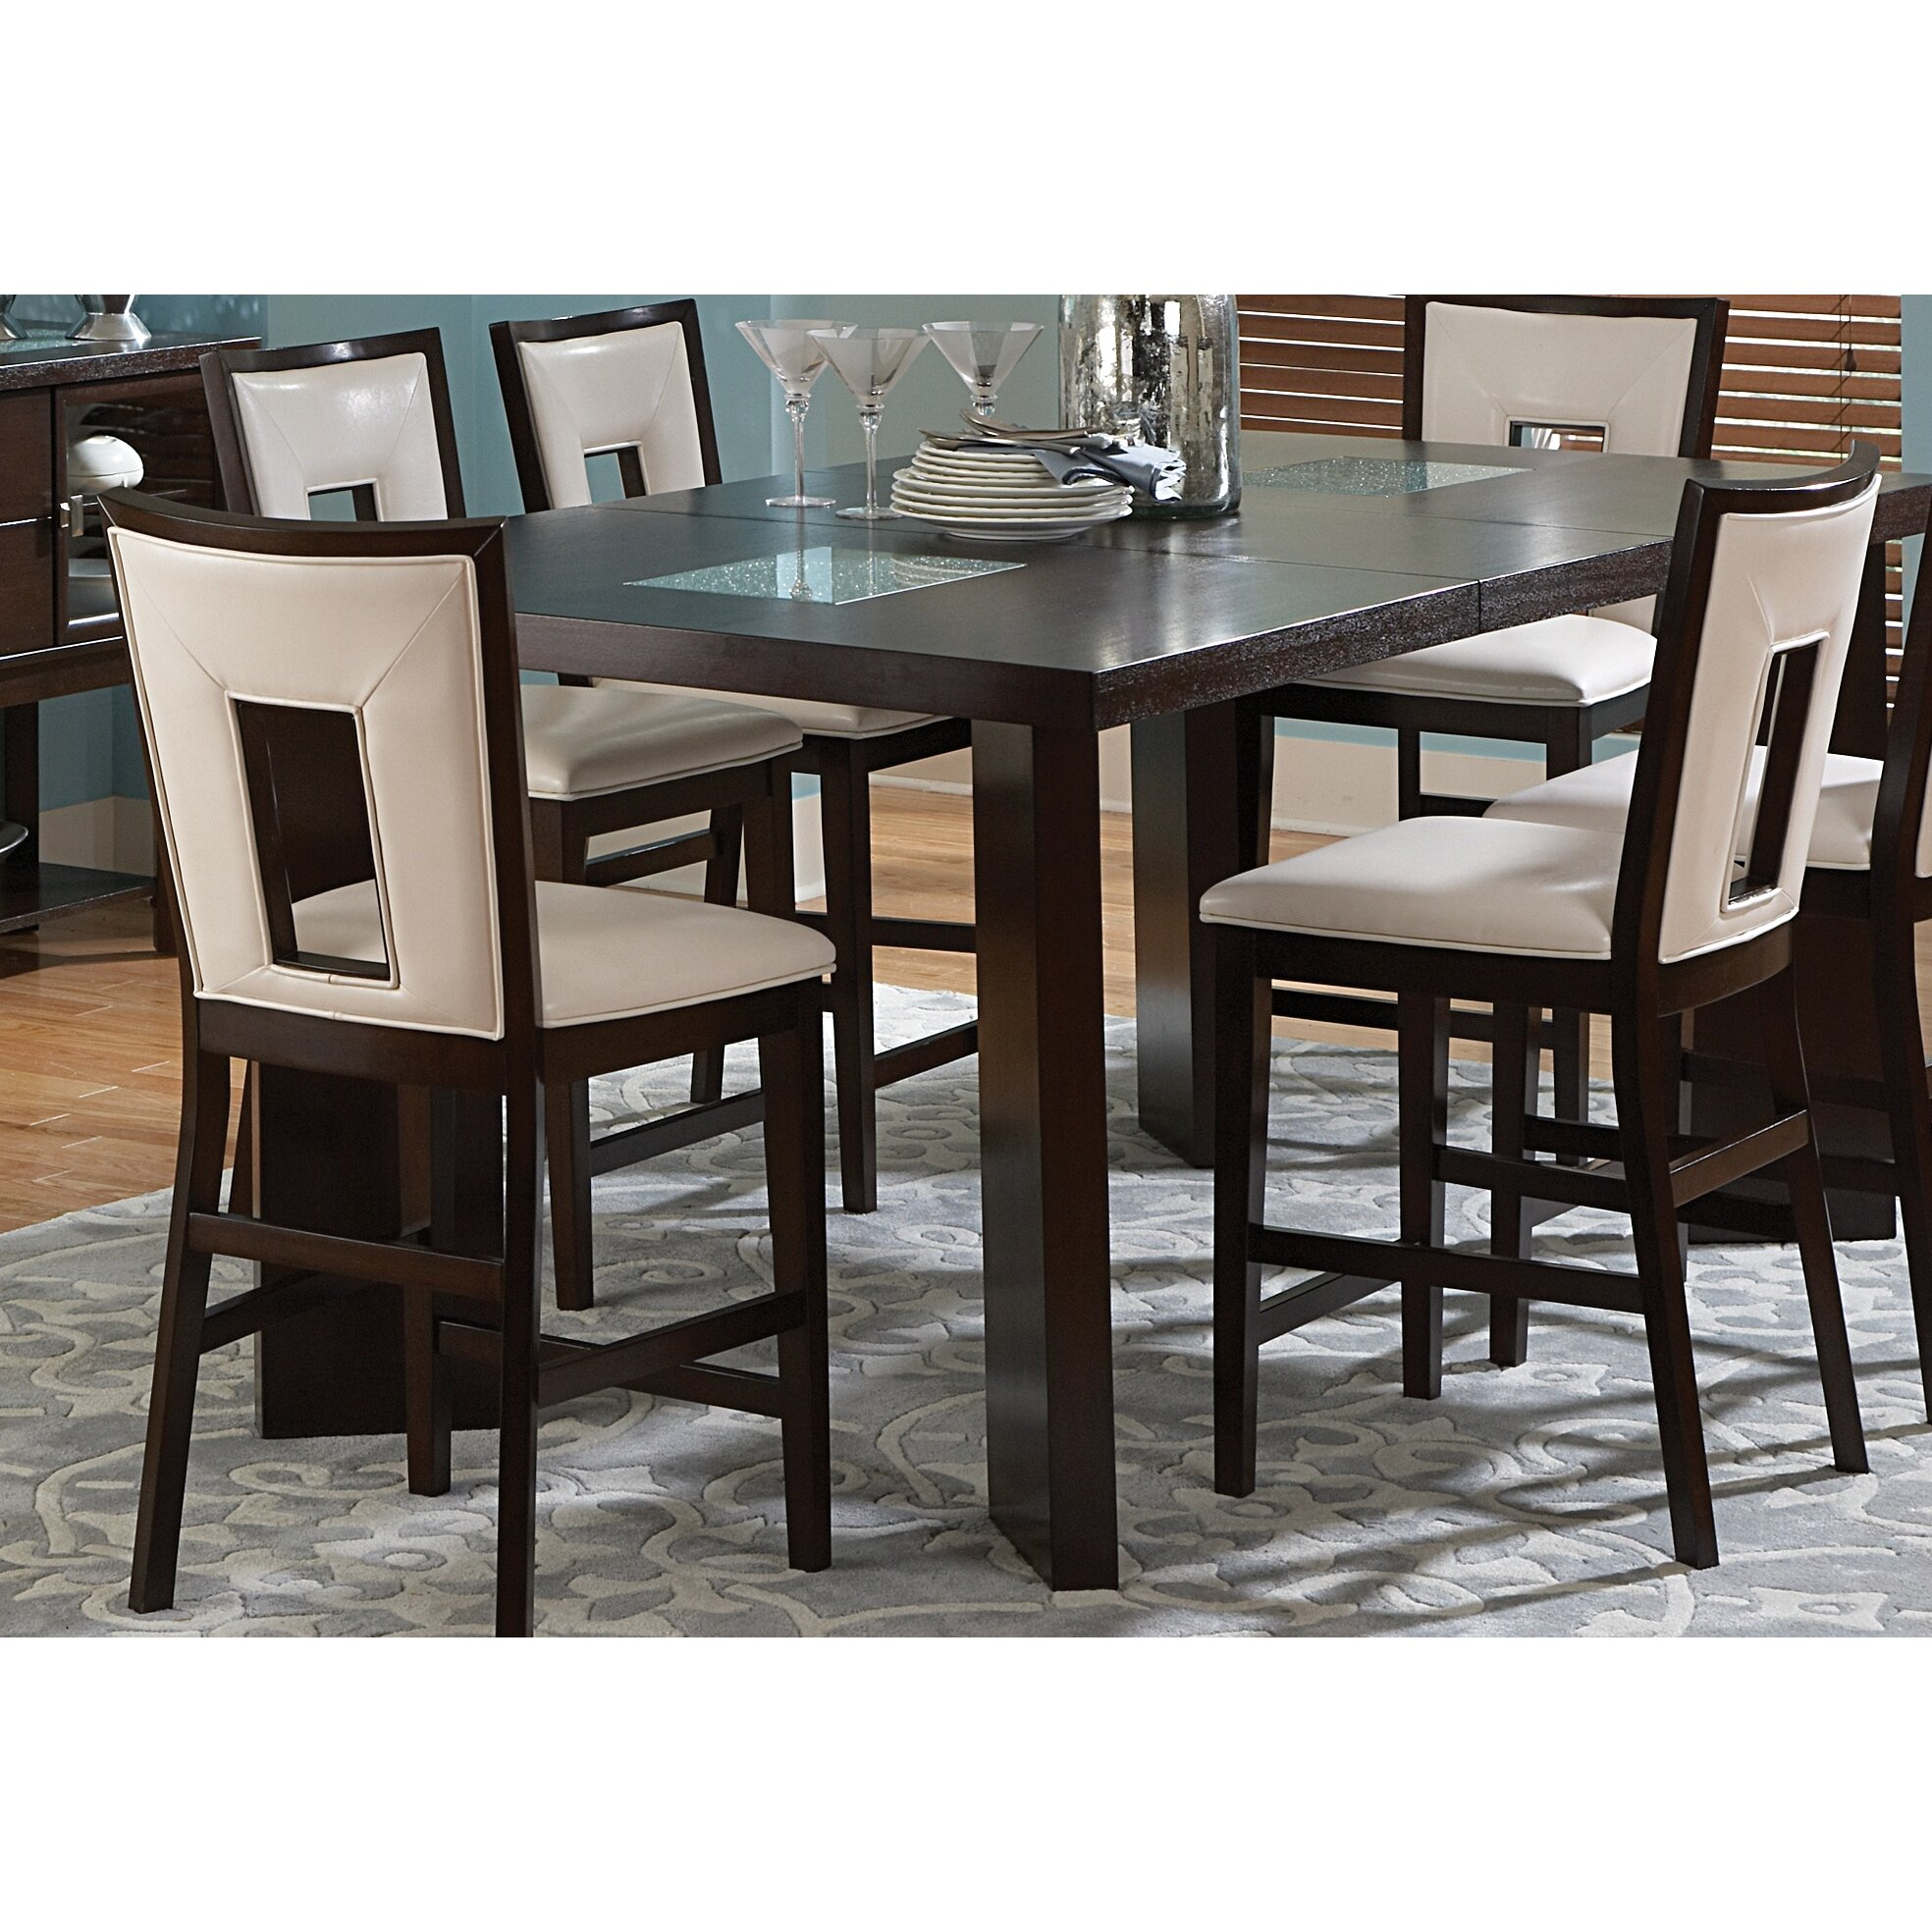 Steve Silver Furniture Delano Counter Height Extendable Dining Table ...